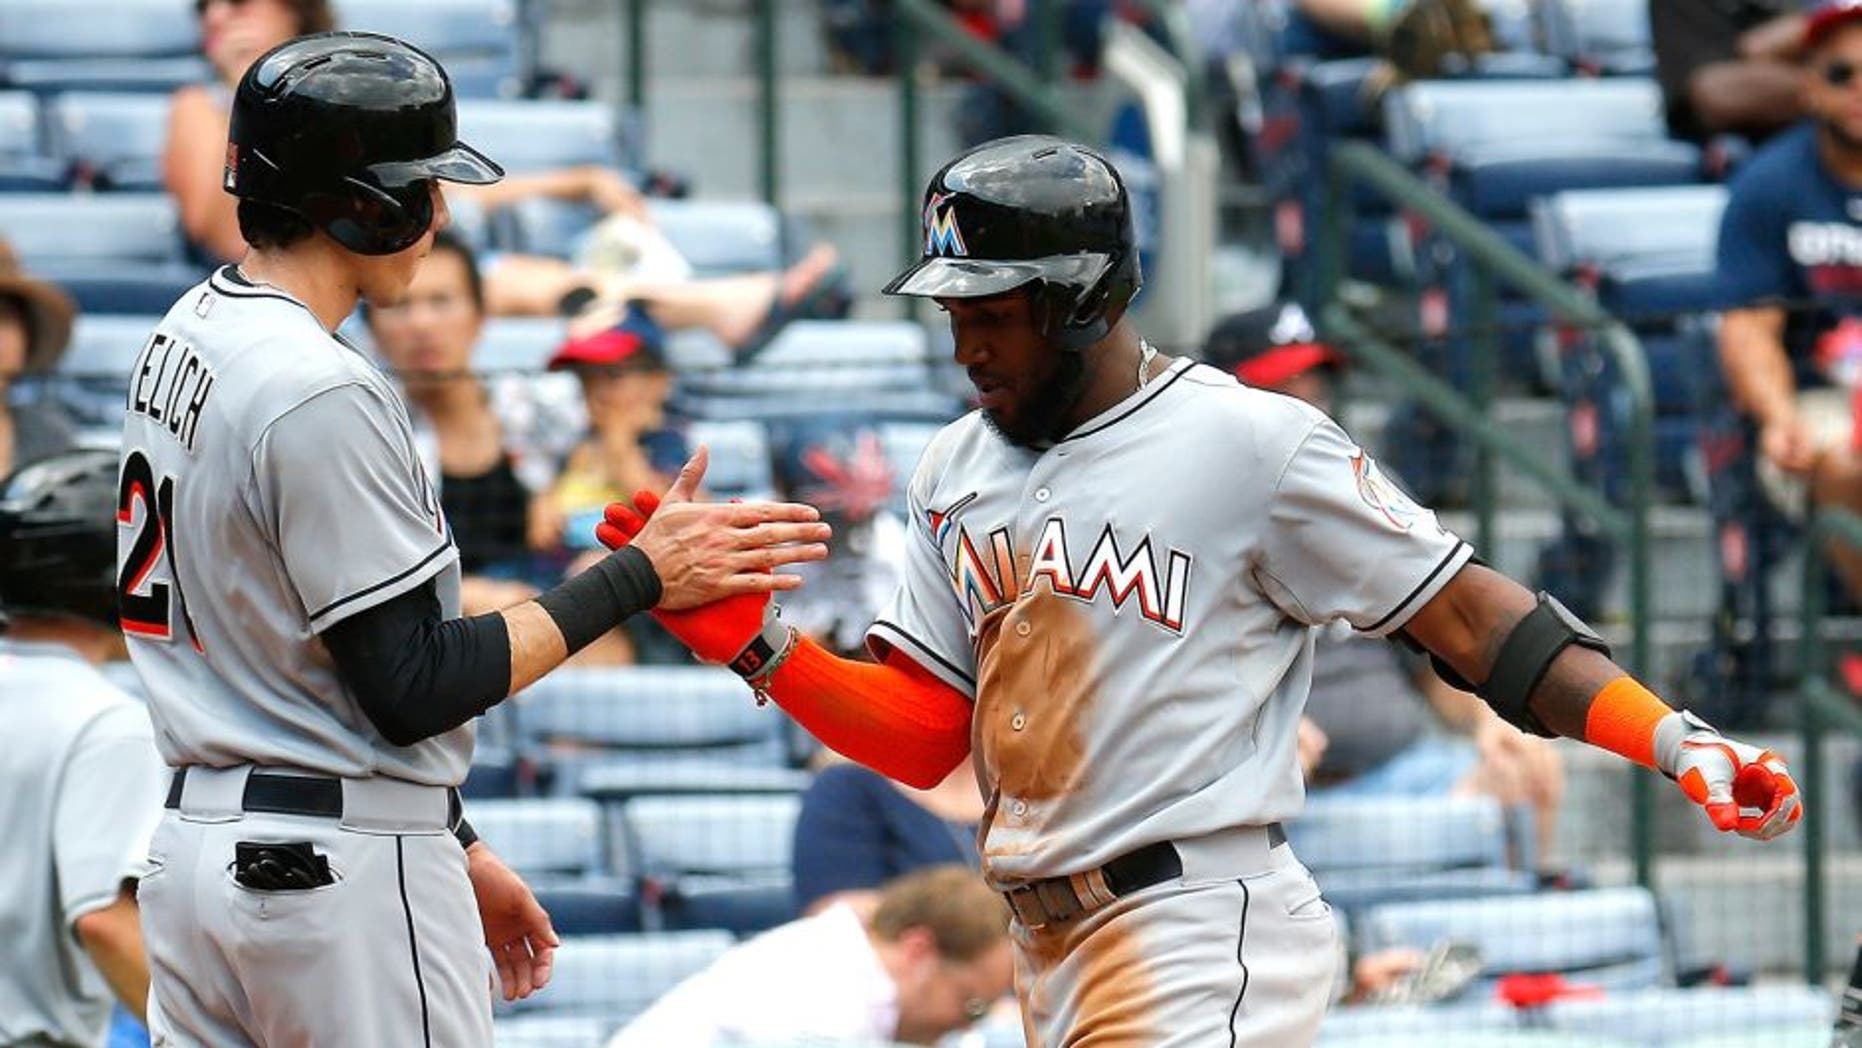 ATLANTA, GA - SEPTEMBER 02: Marcell Ozuna #13 of the Miami Marlins celebrates with Christian Yelich #21 after hitting a two-run homer in the fifth inning against the Atlanta Braves at Turner Field on September 2, 2015 in Atlanta, Georgia. (Photo by Kevin C. Cox/Getty Images)